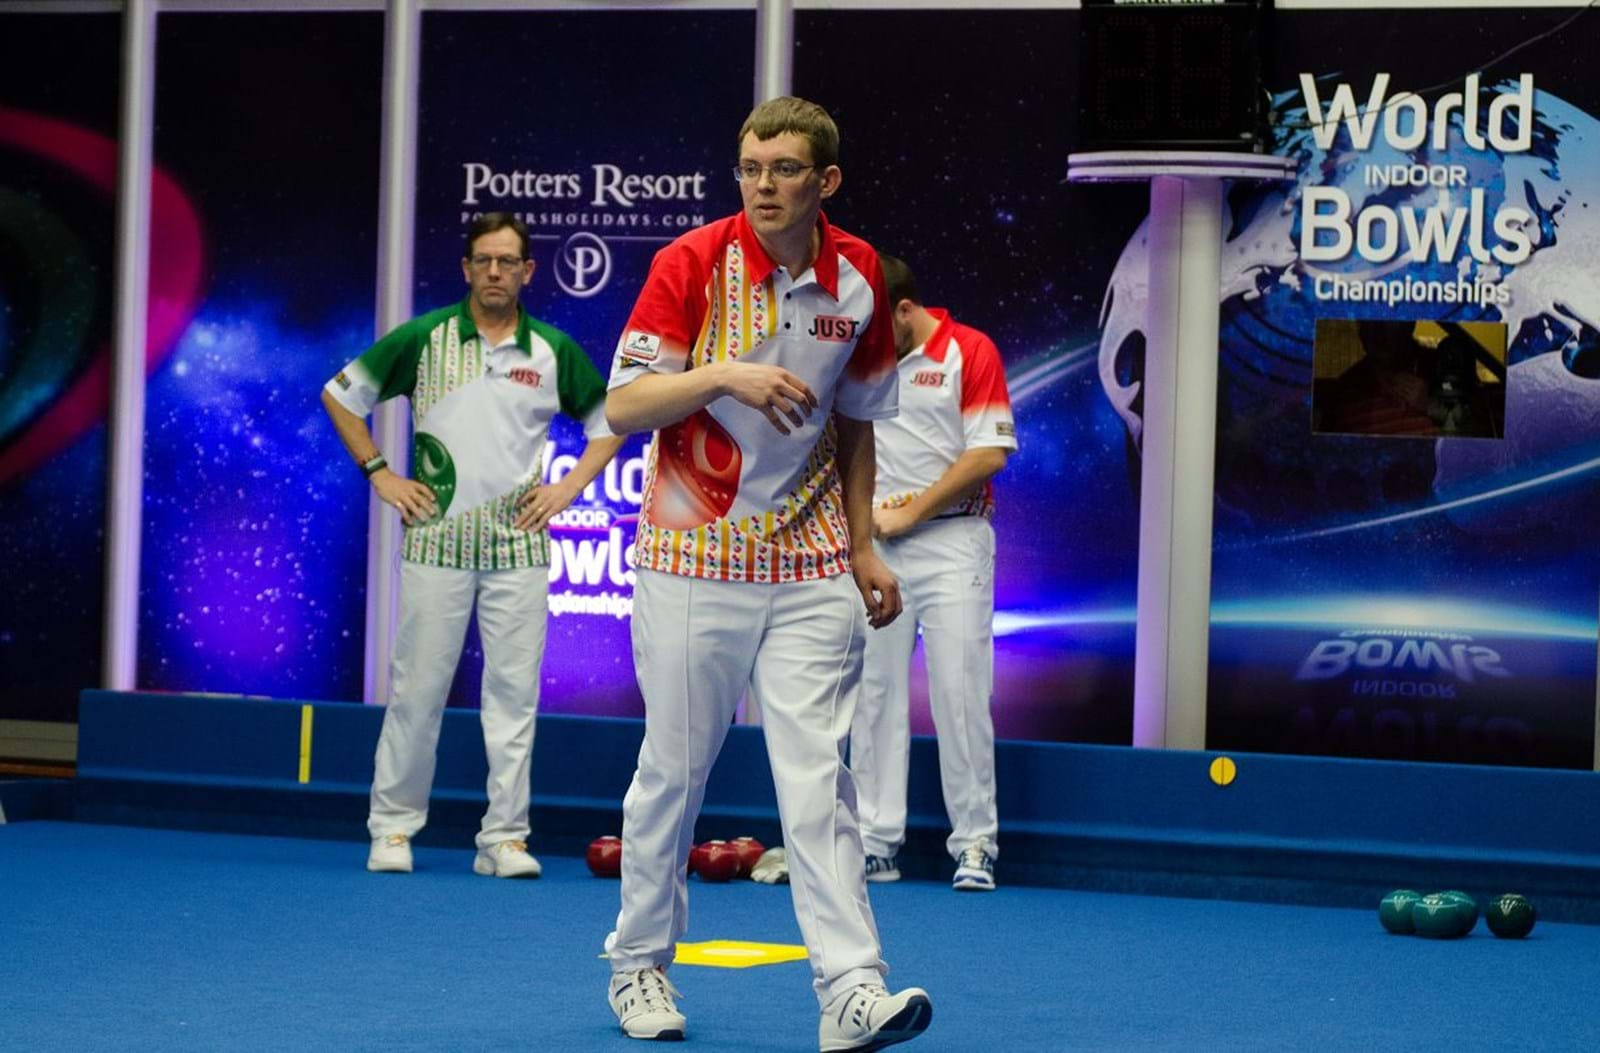 SUNSET+VINE'S PERFECT DELIVERY SECURES WORLD INDOOR PROFESSIONAL BOWLS CHAMPIONSHIPS WIN